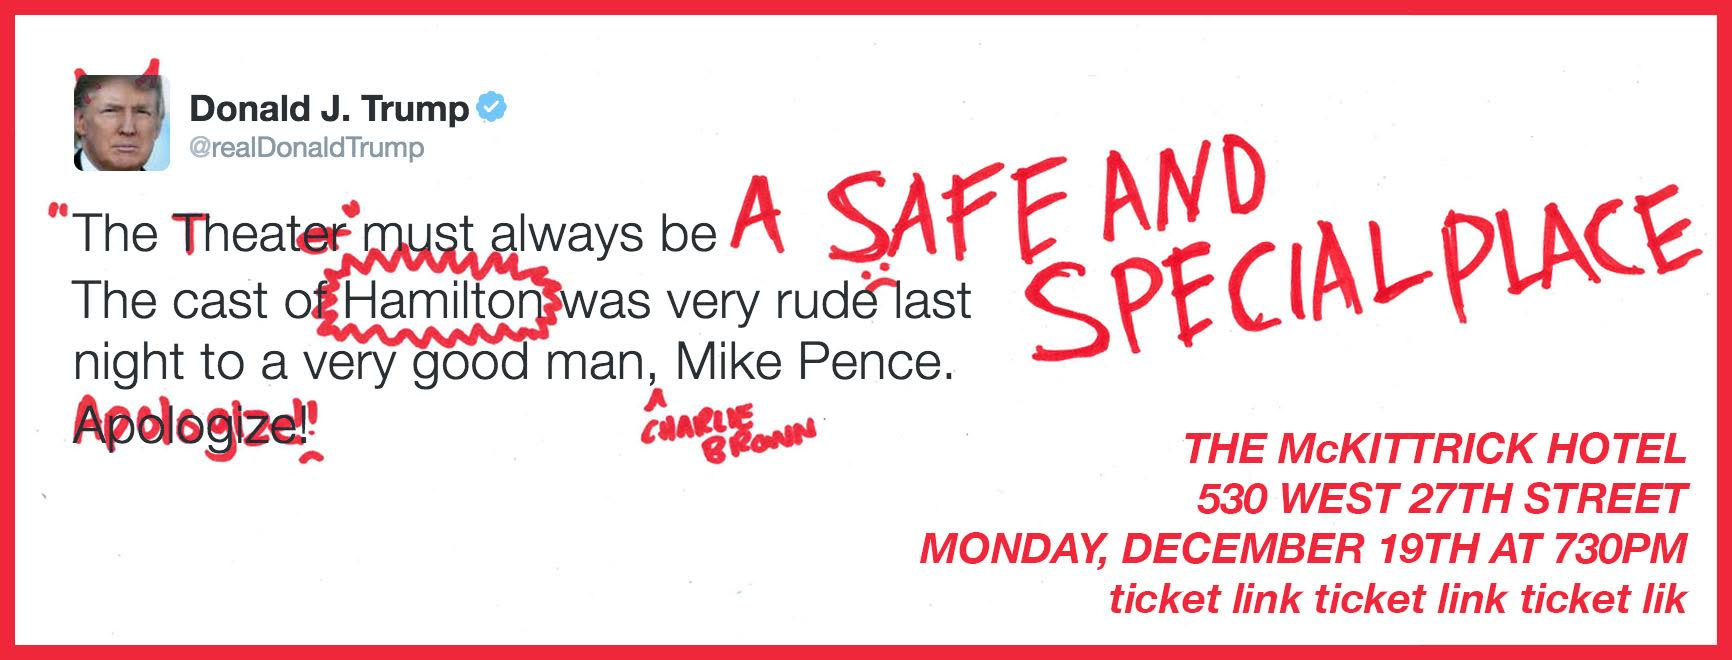 Safe and special place _poster.jpg